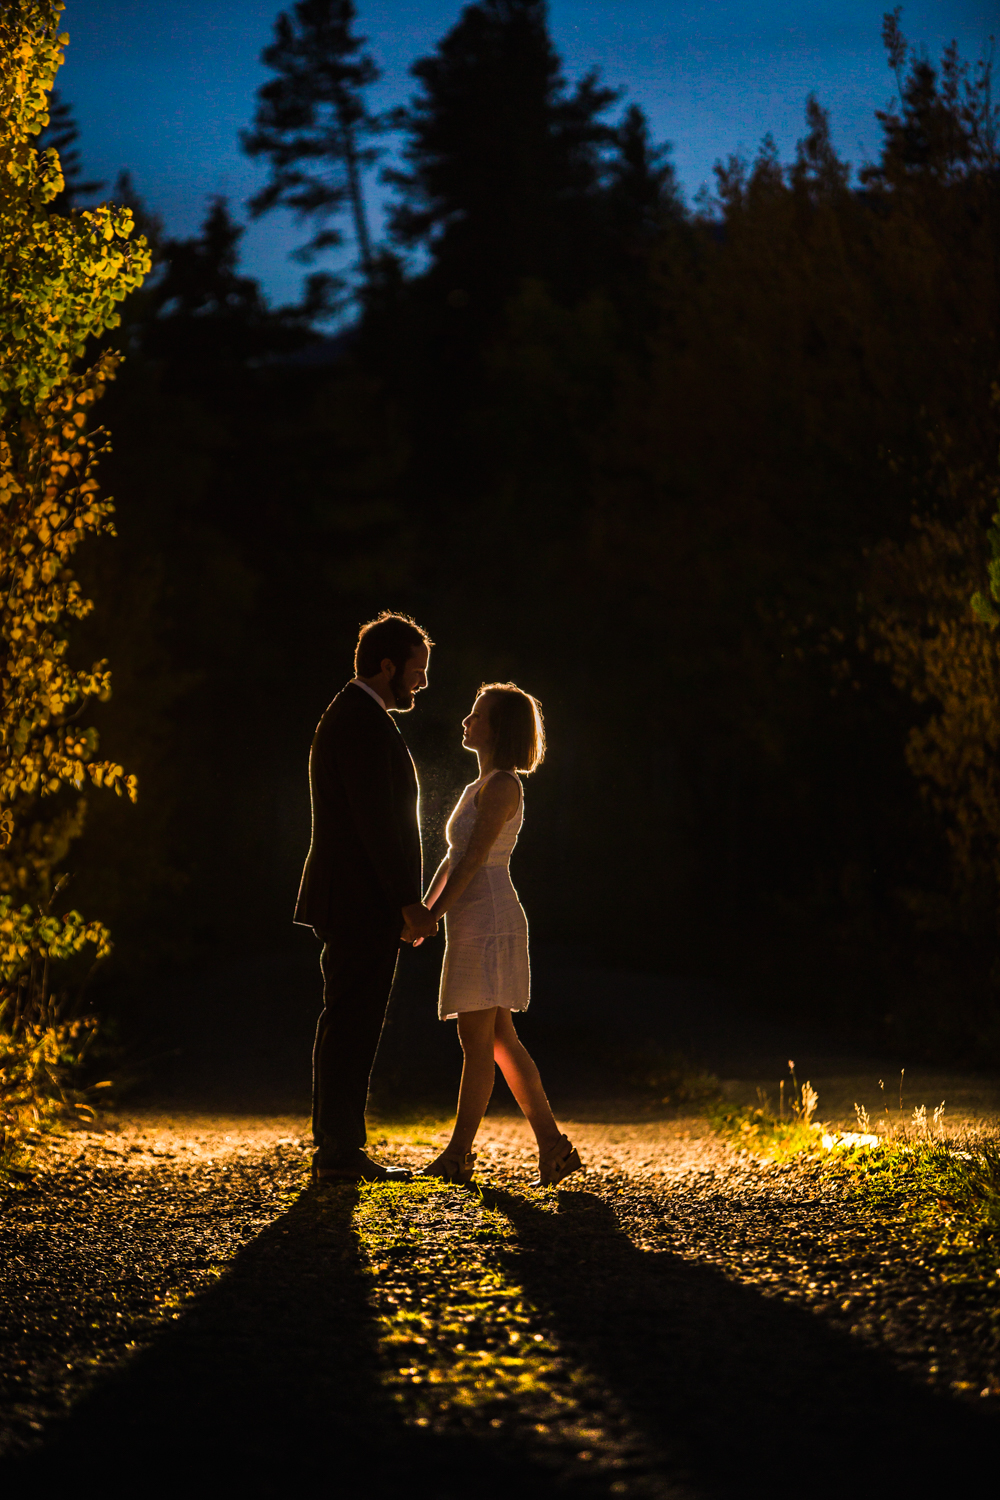 Lily Lake Engagements | Katie and Jake | Estes Park Wedding Photographer